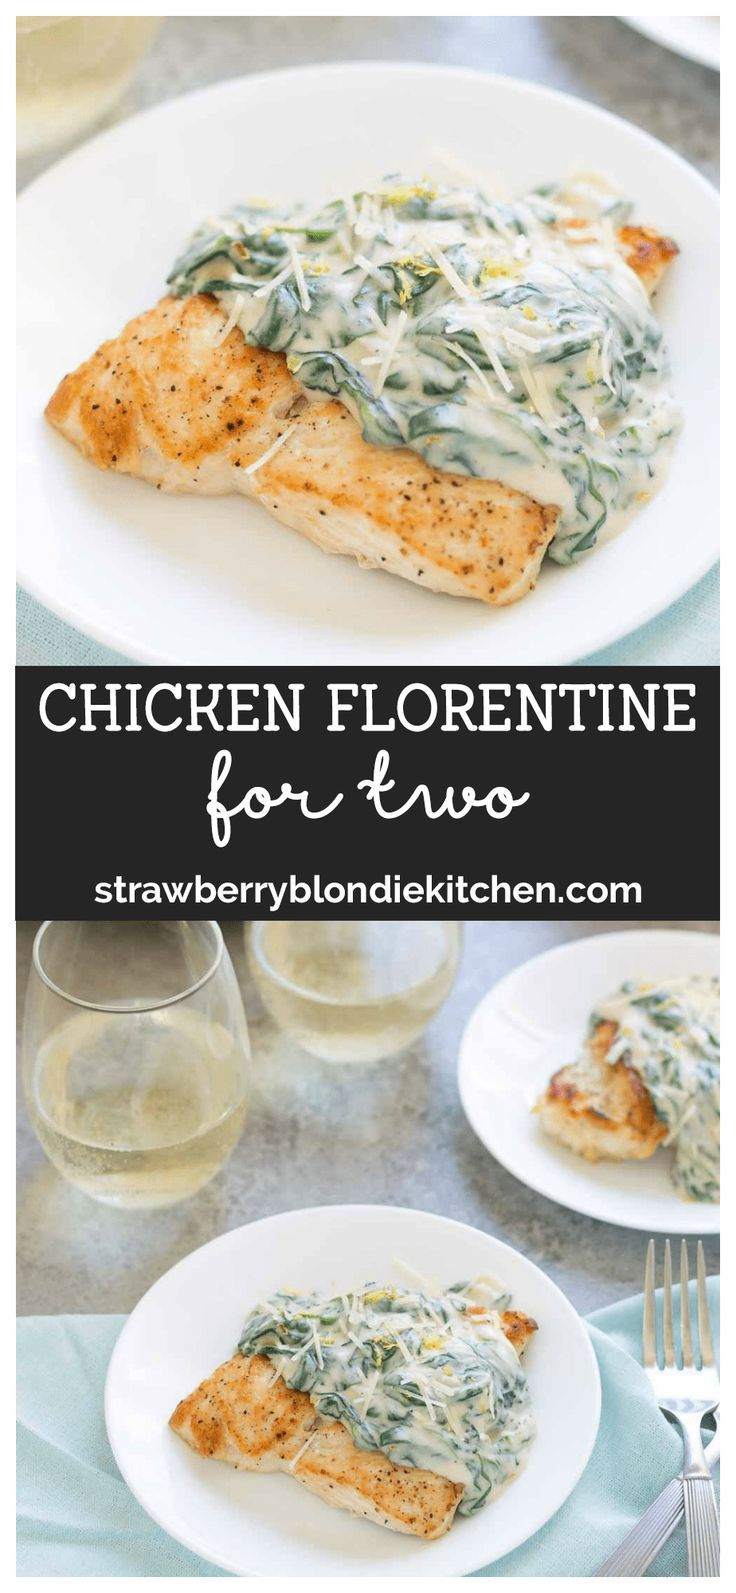 This one pan Chicken Florentine for 2 is perfect for date night in.  Creamy, cheesy spinach sauce is spooned over pan roasted chicken breasts to bring dinner to the table in under 30 minutes. #mealsfortwo #mealsfor2 #dinnerfortwo #chickenrecipes #chickenflorentine #onepan #onepanrecipes #chicken #onepanplan